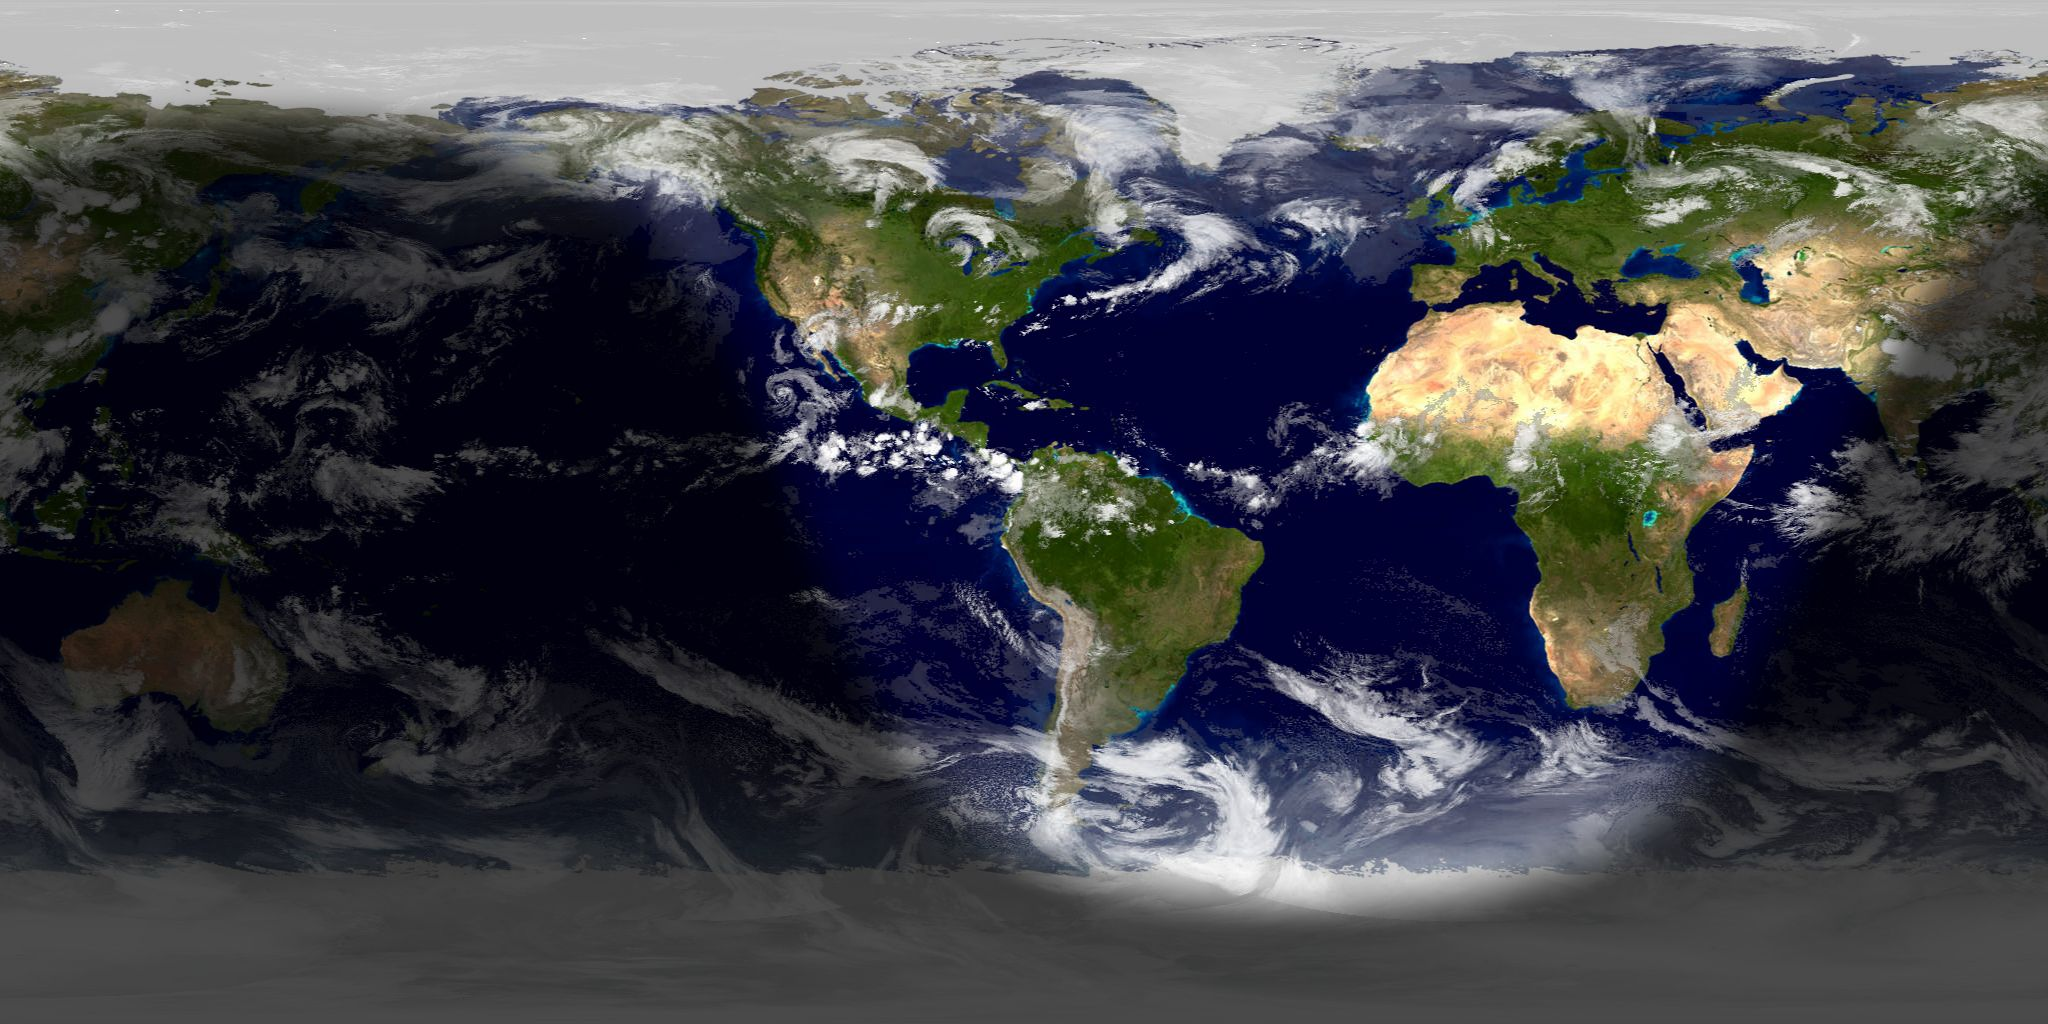 Daylight View of the Earth